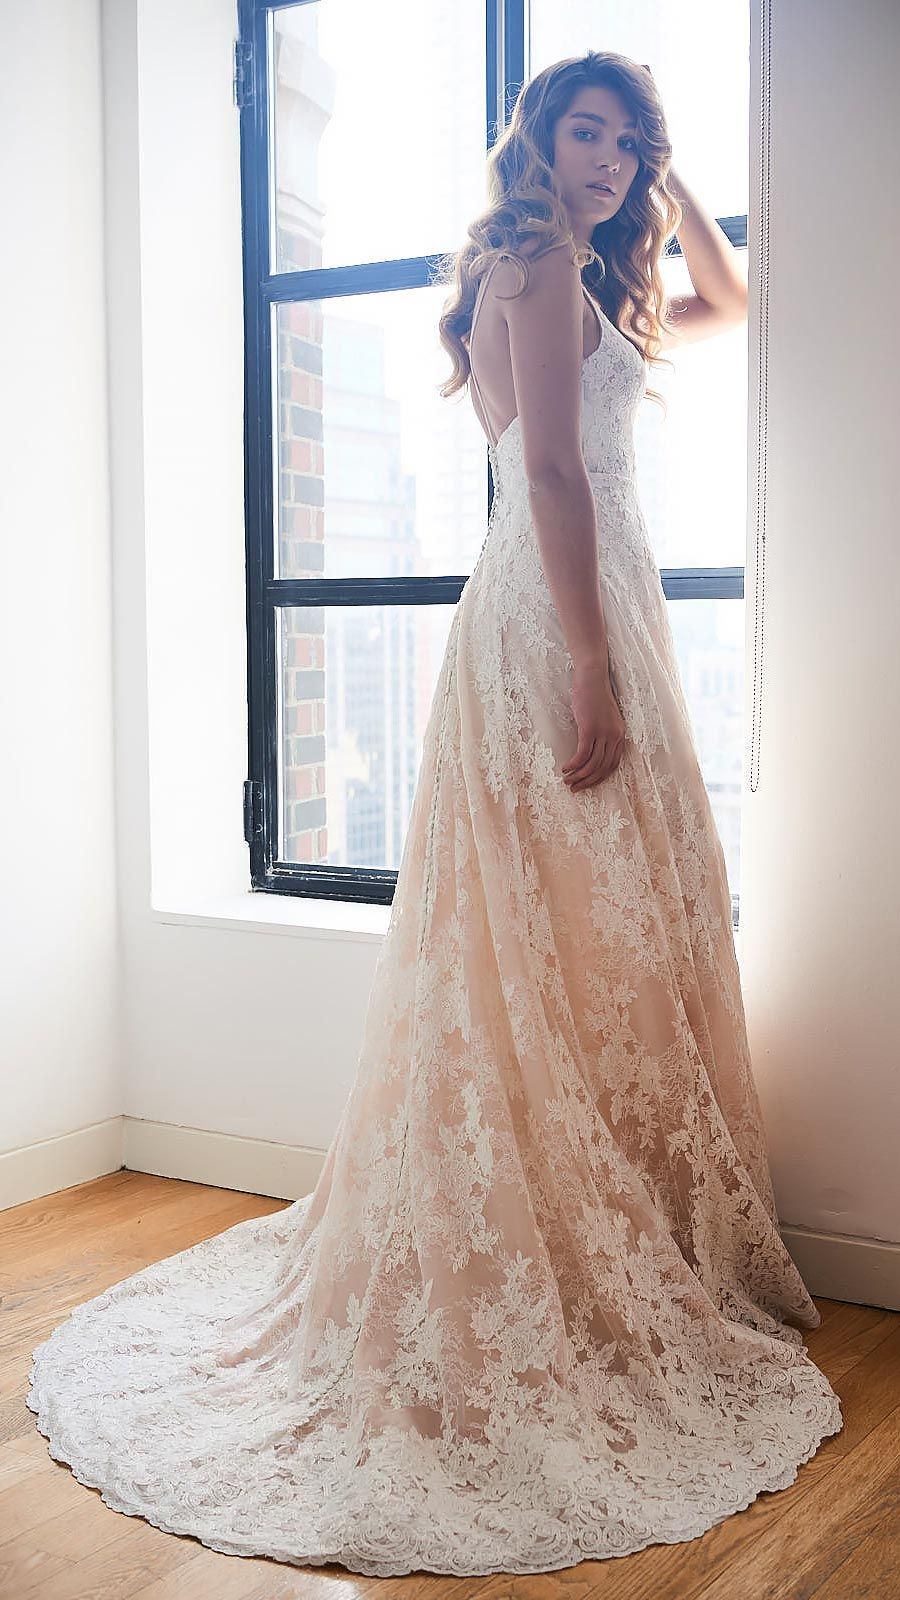 6aea4bafd The pale blush underlay of Kelly Faetanini's MAIA gown makes this look  oh-so-irresistibly romantic. Maia wedding dress by Kelly Faetanini //  Chantilly lace ...